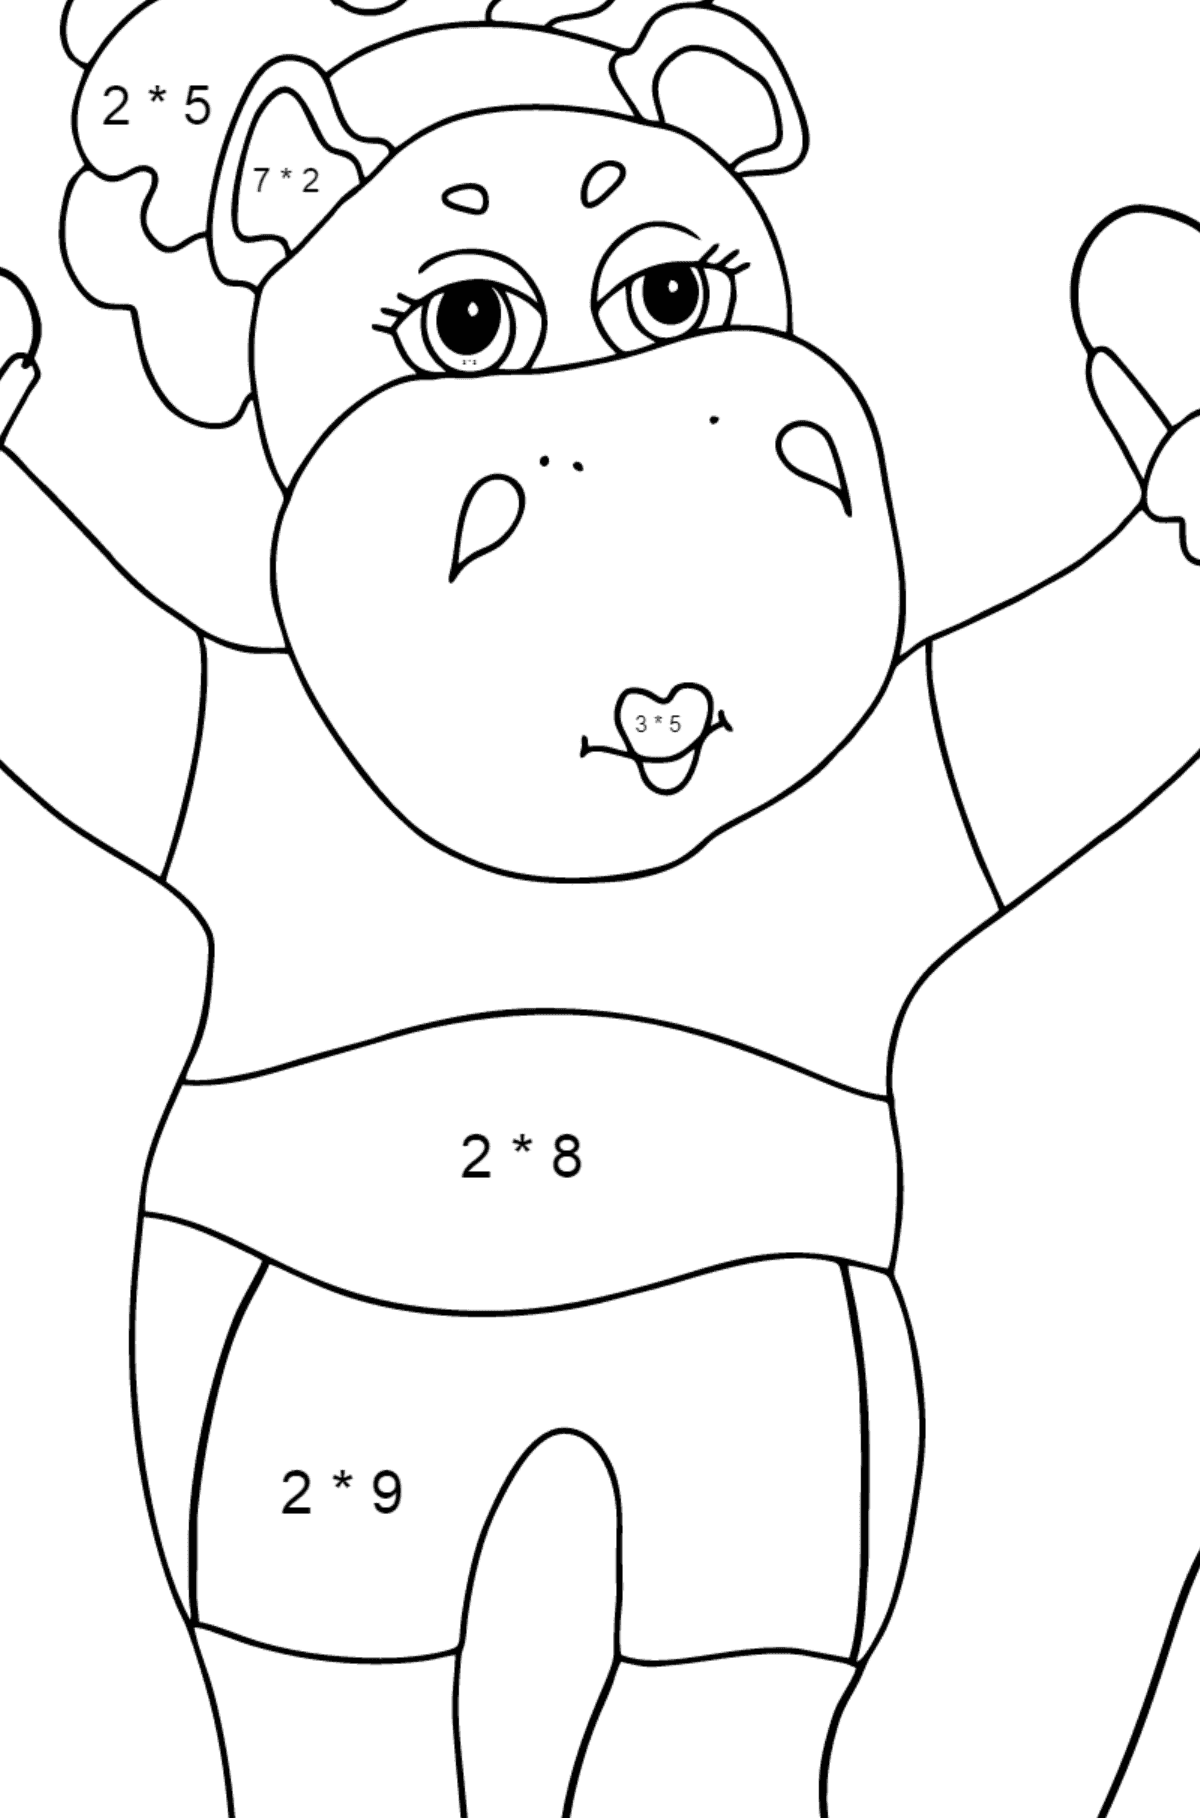 Coloring Page - A Hippo with a Jump Rope for Kids  - Color by Number Multiplication